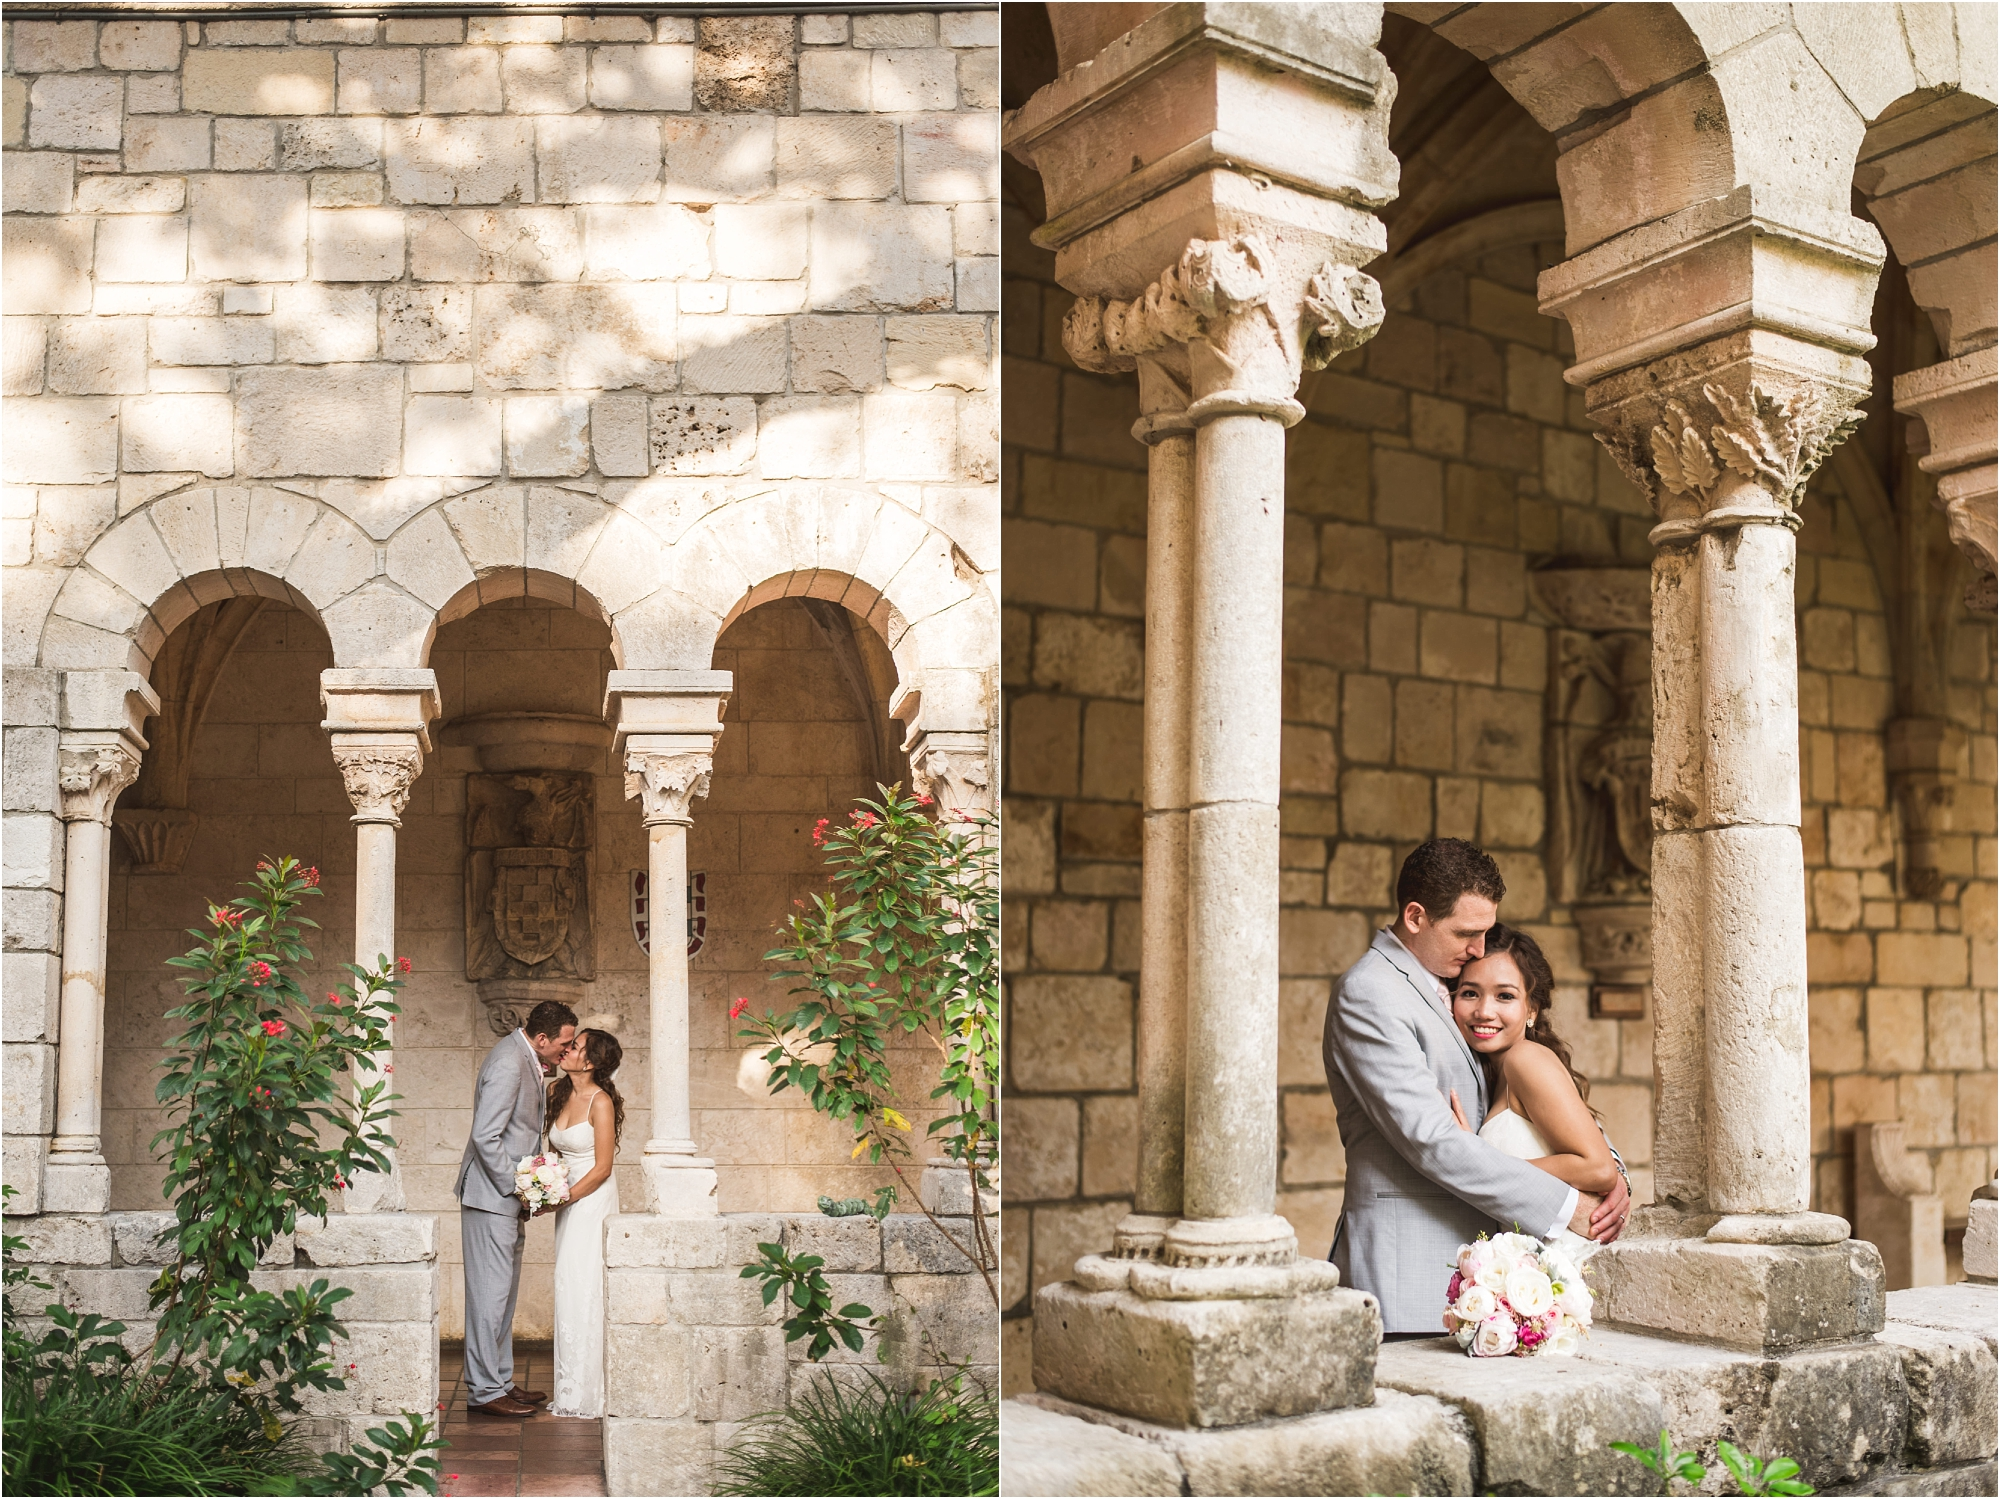 Spanish-Monastery-miami-beach-outdoor-elegant-wedding-photographer-jessenia-gonzalez_1206.jpg